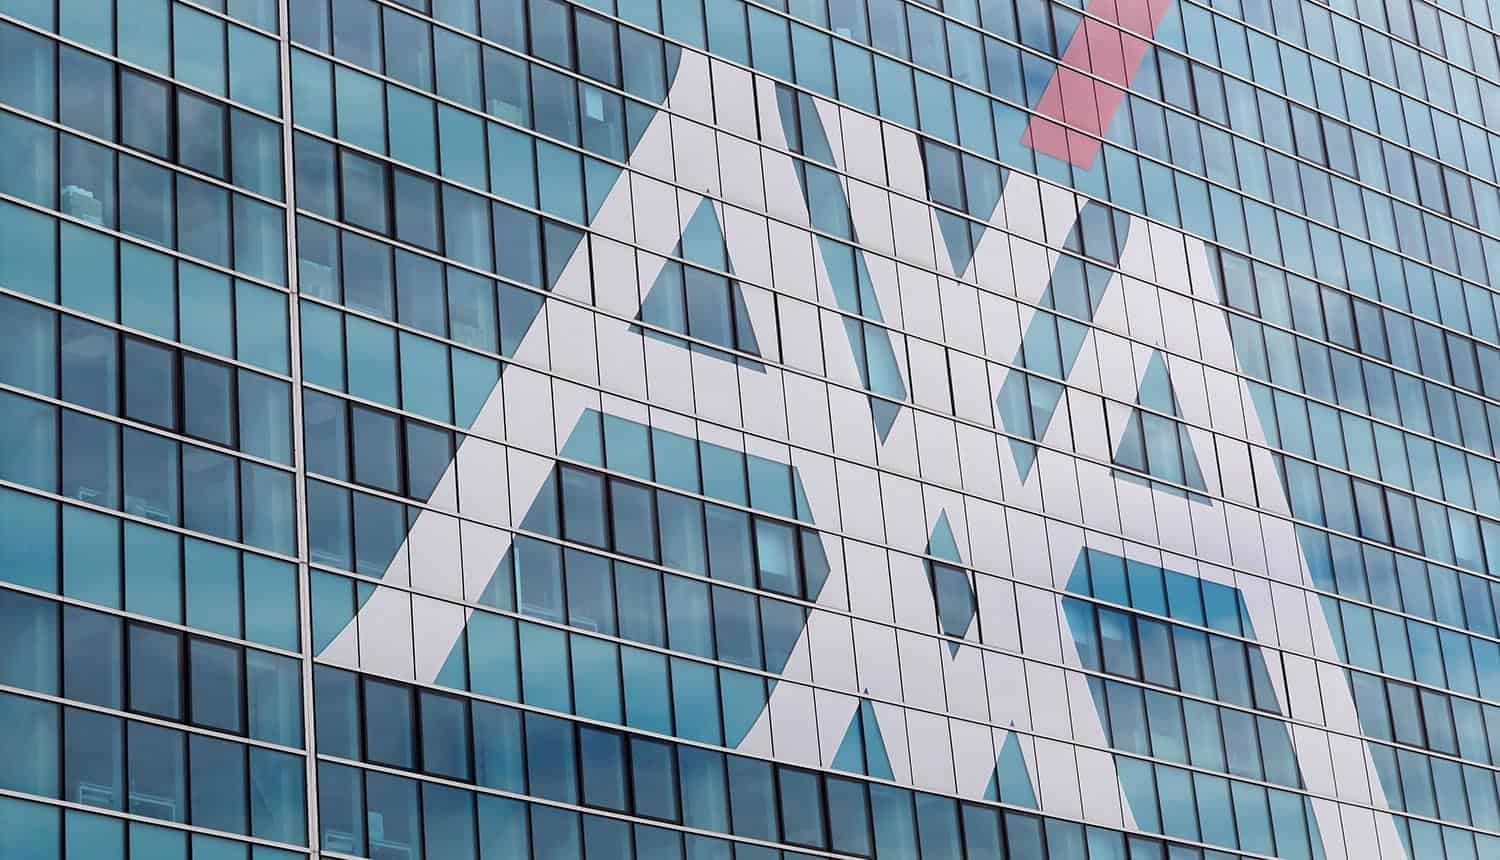 AXA office building showing cyber insurance will not cover ransomware payments